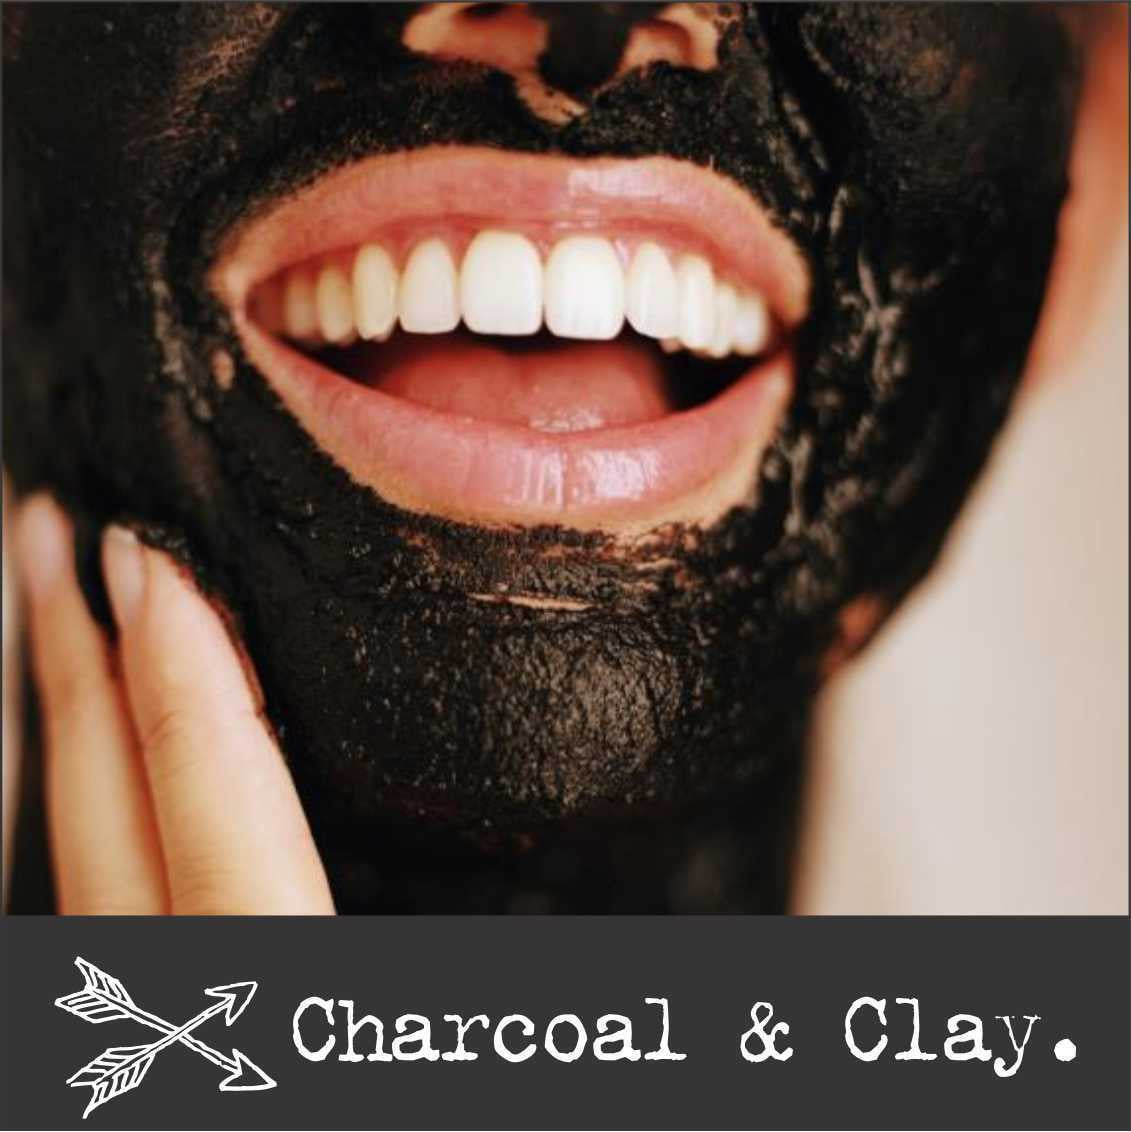 Diy Face Mask Activated Charcoal Powder Deep Cleanse Detox: PEPPERMINT Coconut Oil Pulling Mouthwash + CHARCOAL